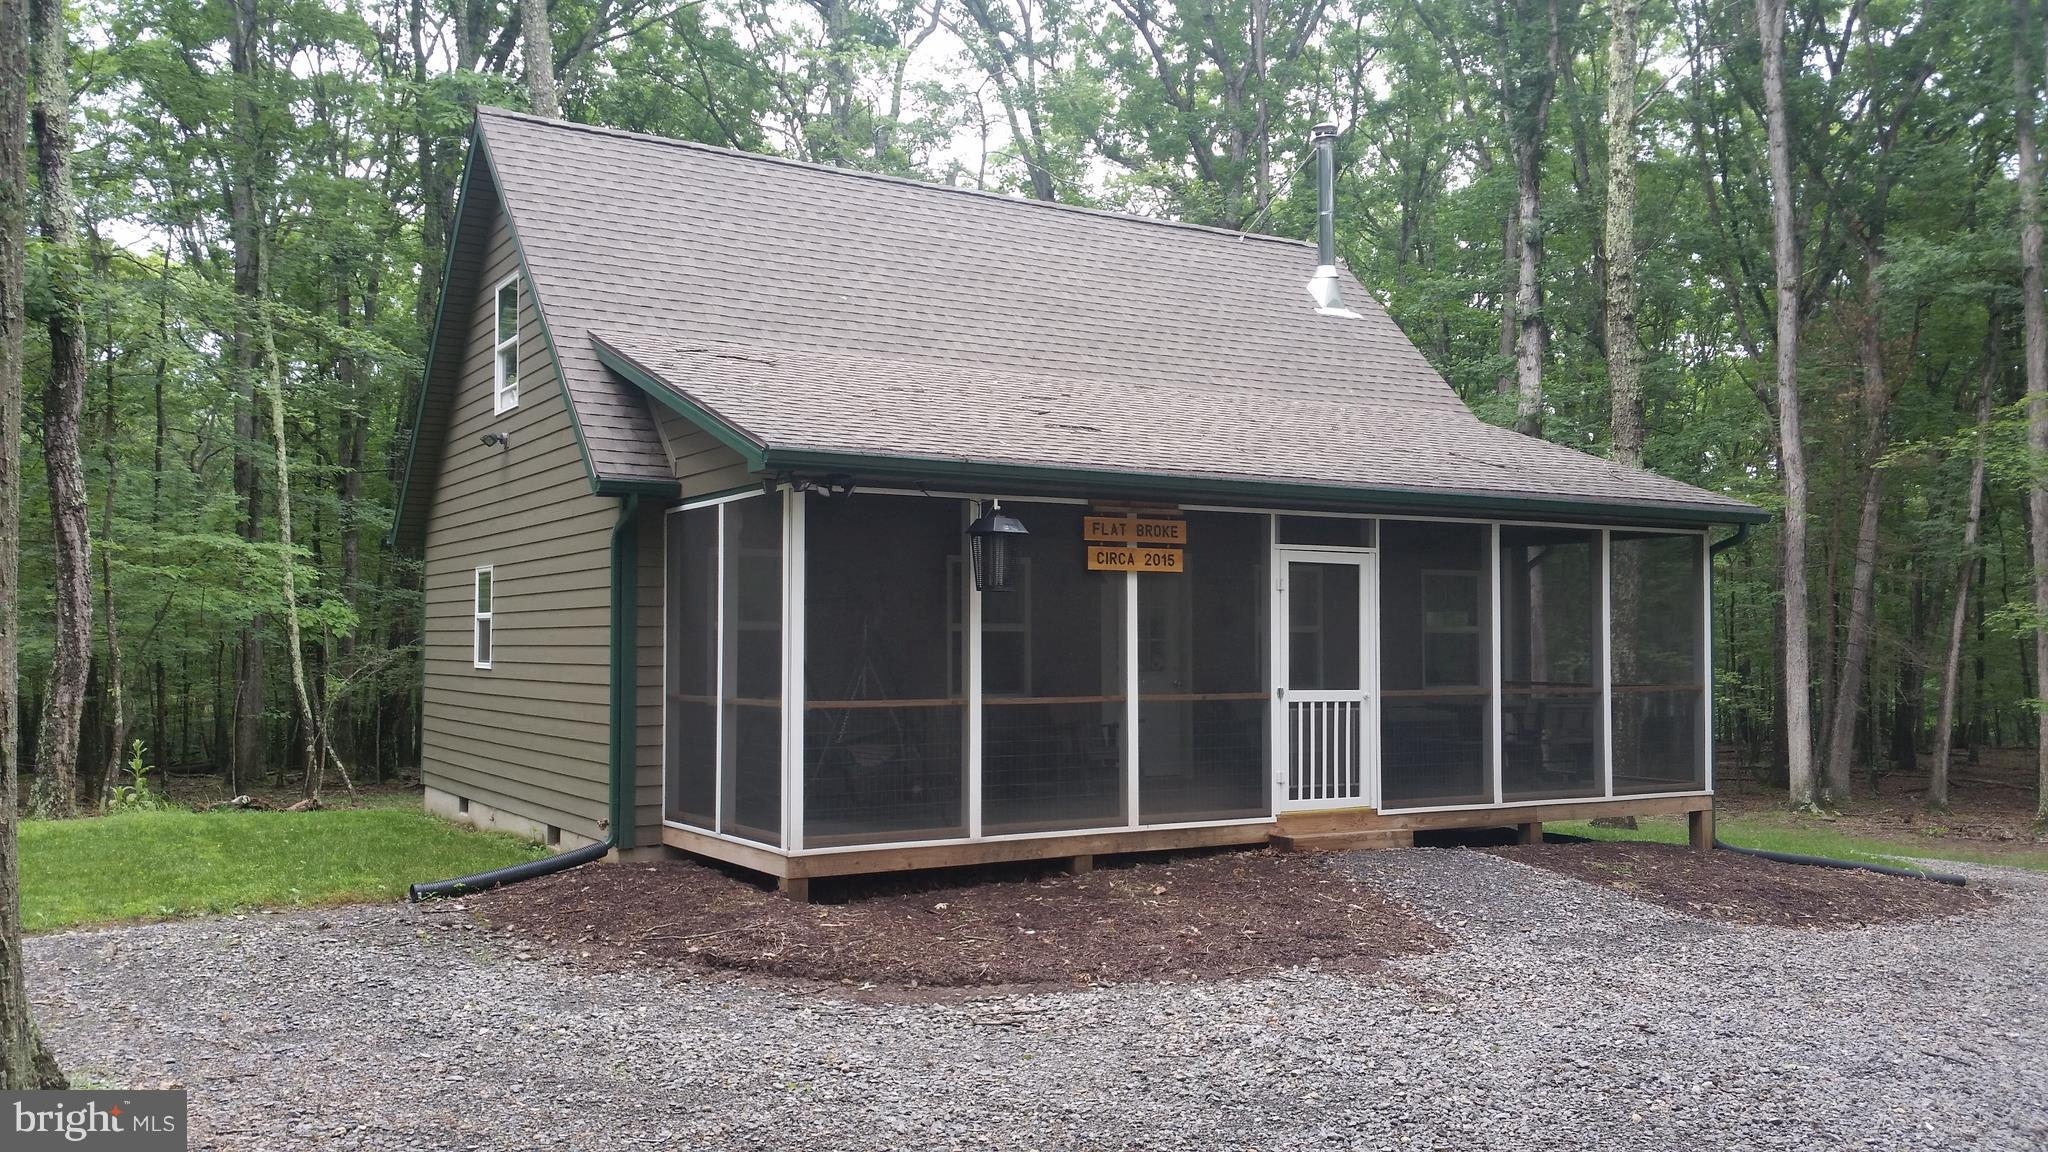 As-New,100% Maintenance Free Chalet with Cacapon River Access, Built in 2015, used very lightly, you'll be impressed with the condition and layout of this weekend get away. Great Room design with wood stove, 1 bedroom and loft, 1.5 baths and will comfortably sleep 6. Nicely Furnished, Beautifully wooded private lot just up the mountain from the community river lot. Ready to enjoy NOW, call Today!